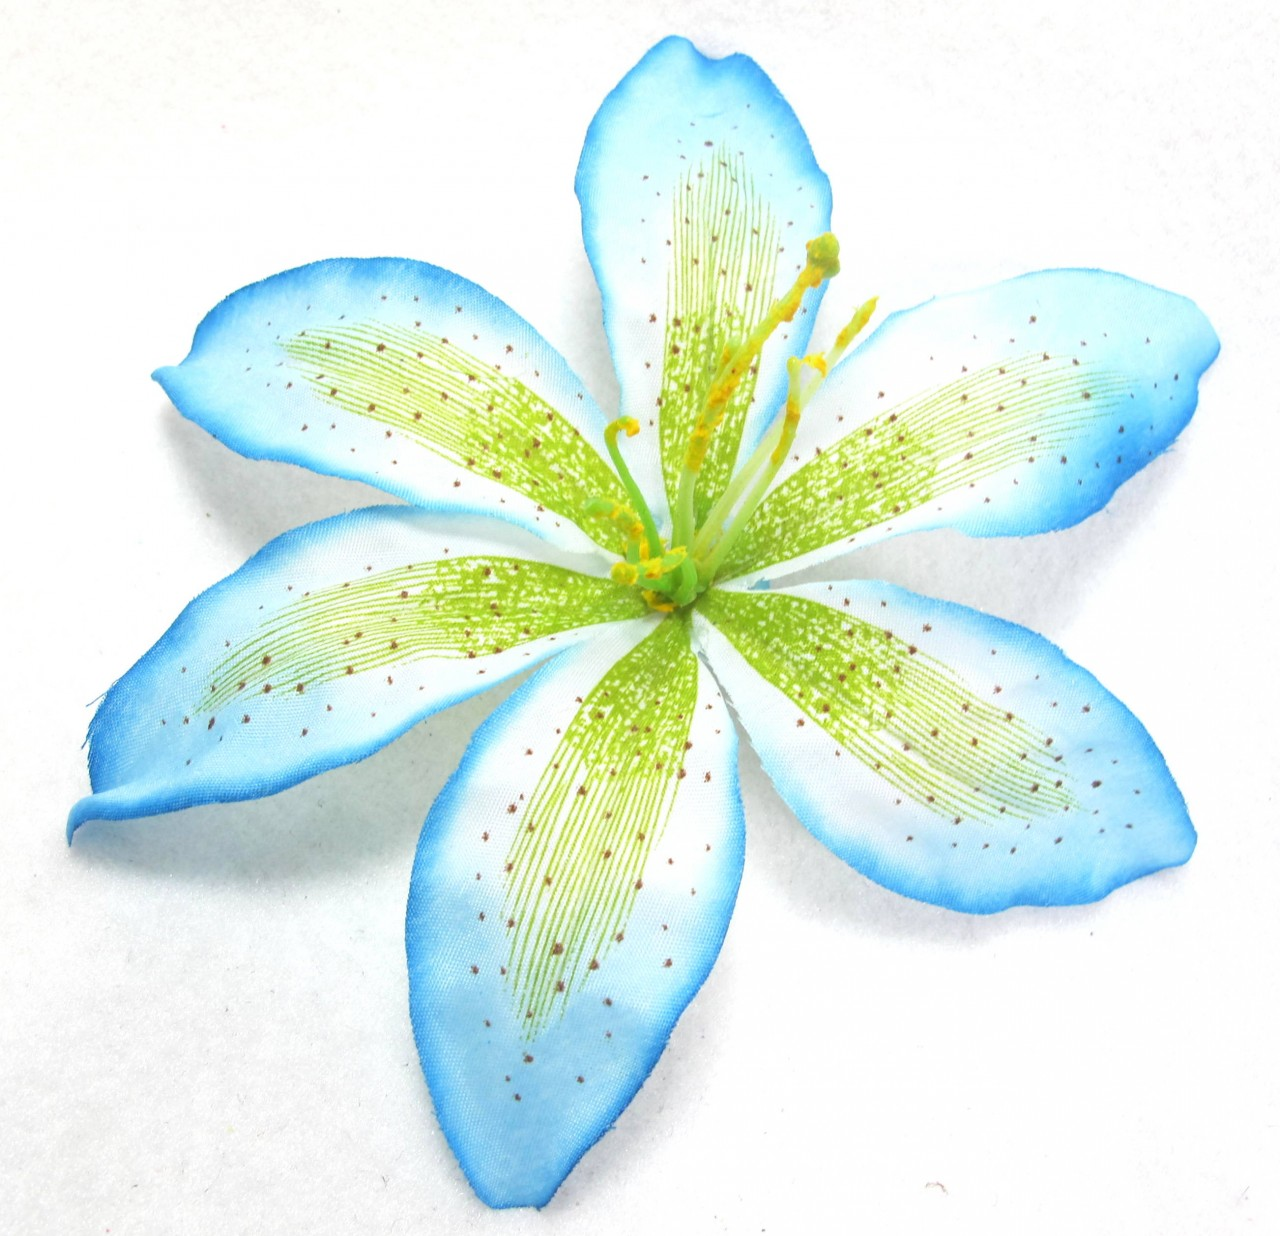 Lily flower drawing pictures at getdrawings free for personal 1280x1236 blue lily clipart izmirmasajfo Images